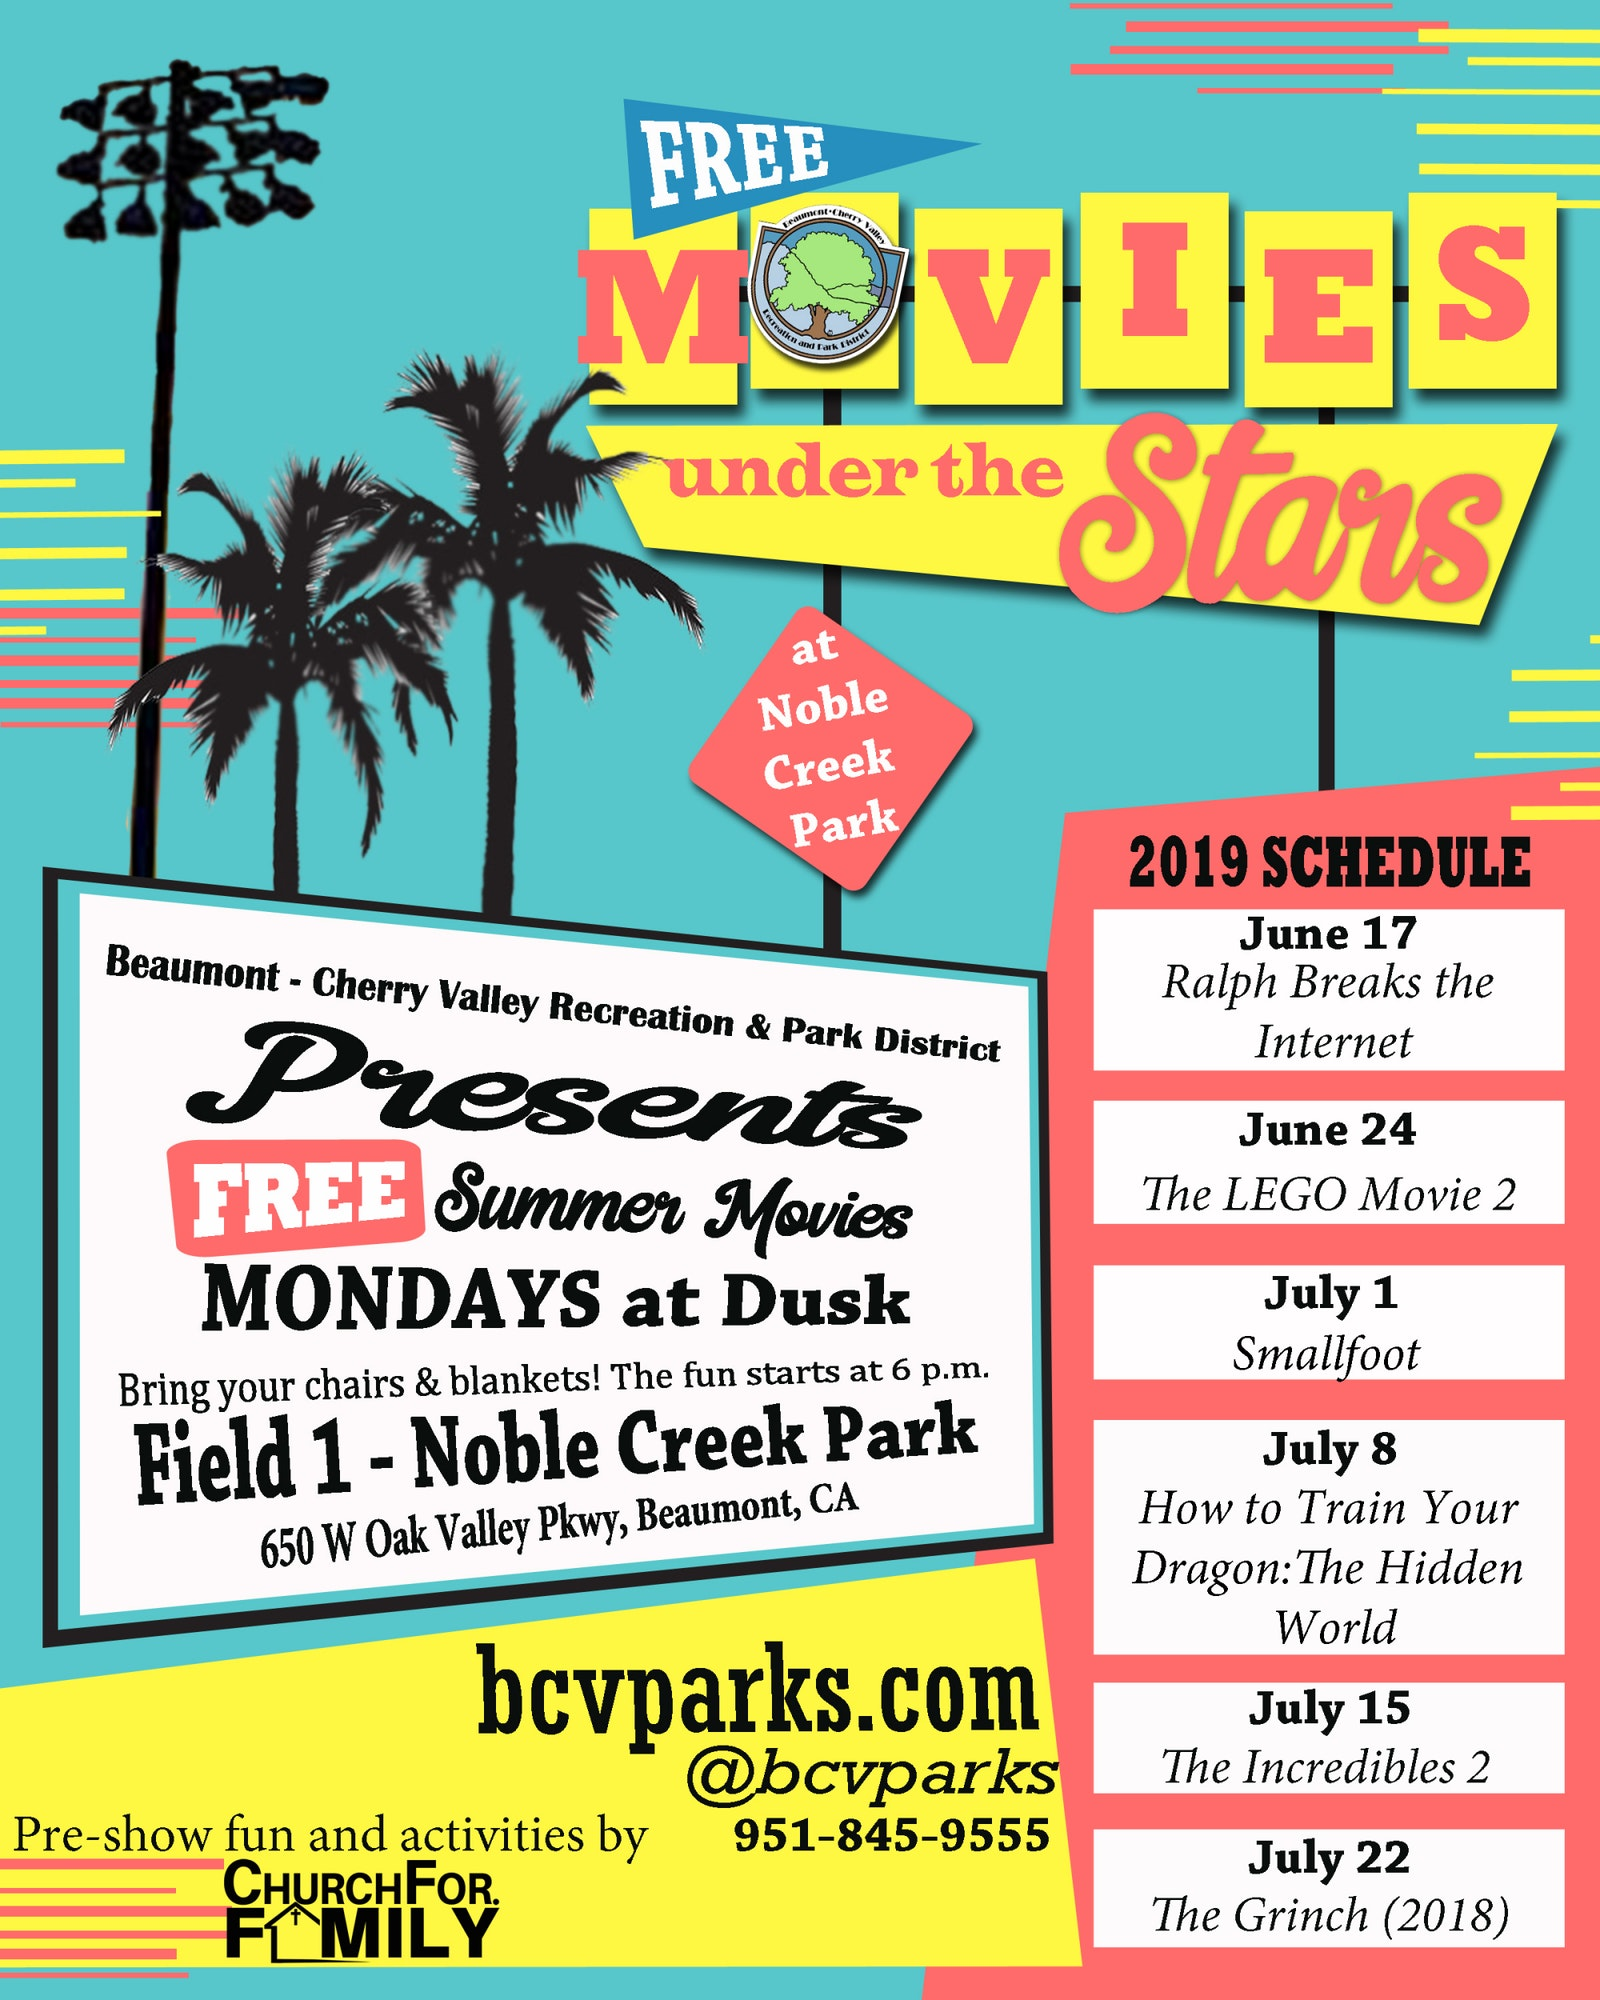 Movies Under the Stars - Beaumont-Cherry Valley Recreation